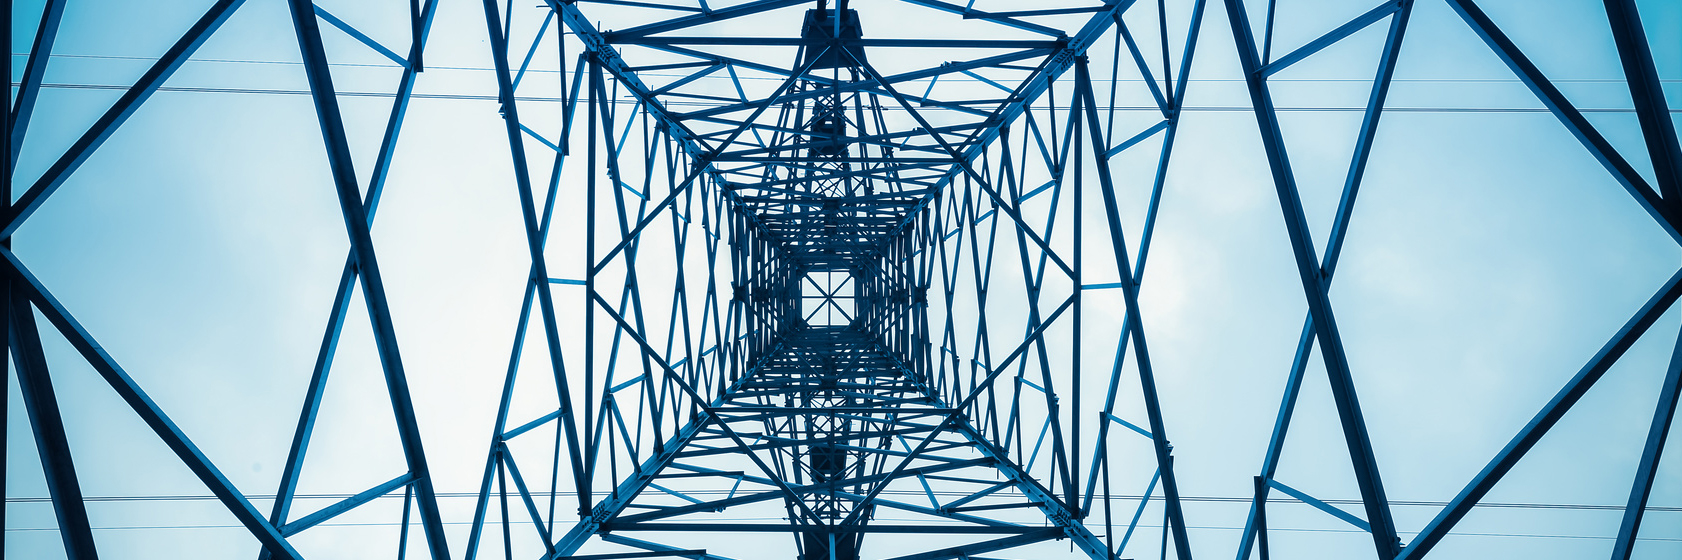 View of electricity tower from the vantage point of standing beneath it and looking up